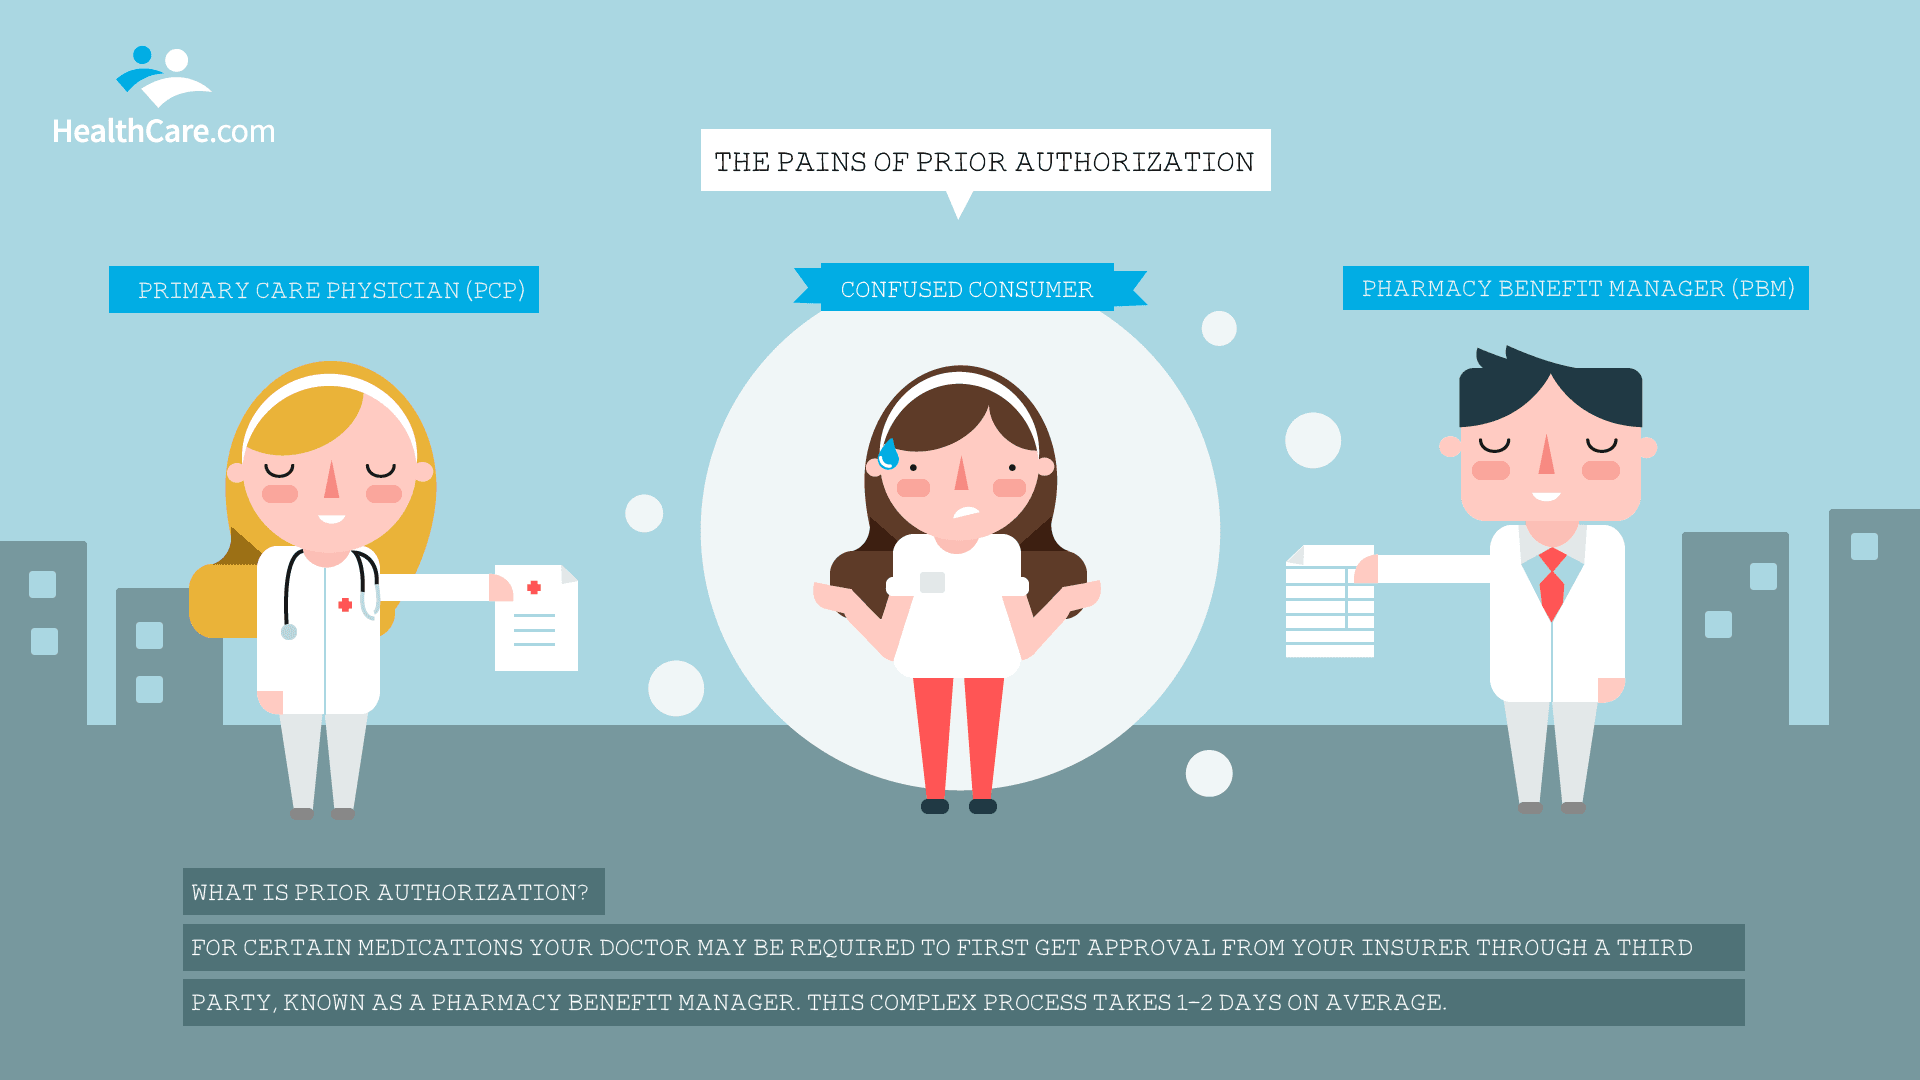 What Is Prior Authorization? Illustration | The CheckUp by HealthCare.com